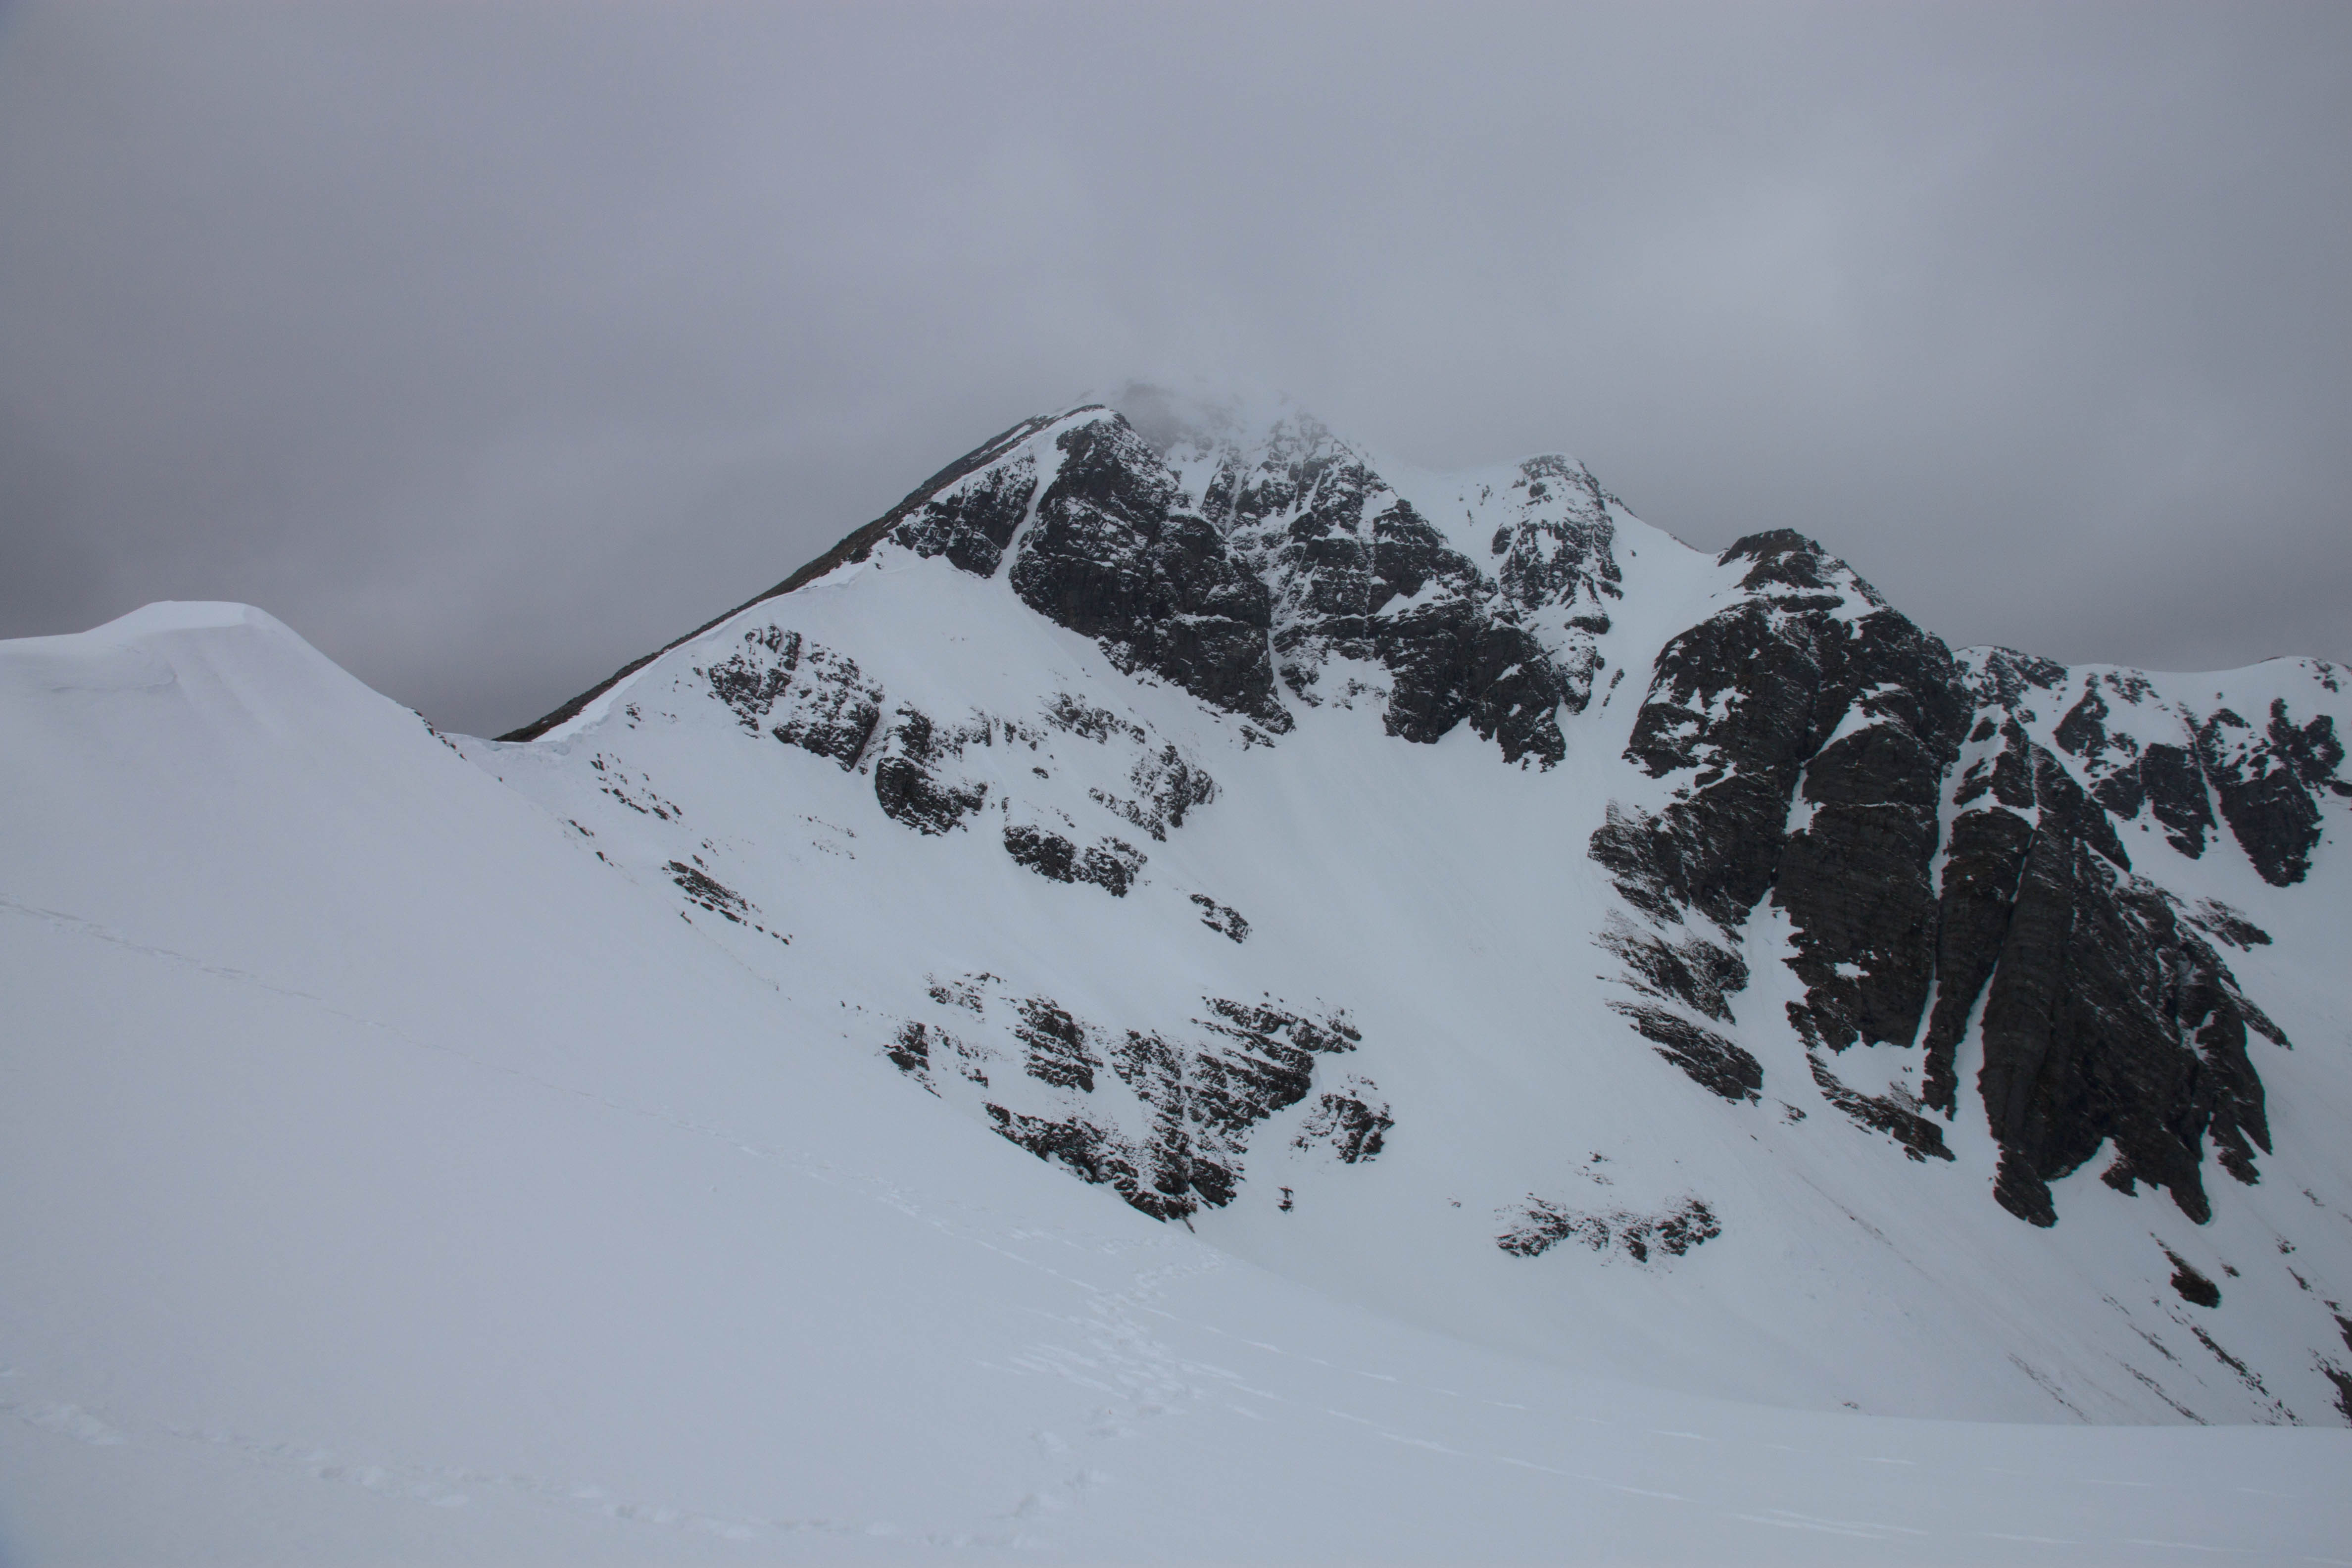 Mullach nan Coirean in the Mamores south of Glen Nevis. March 2015.